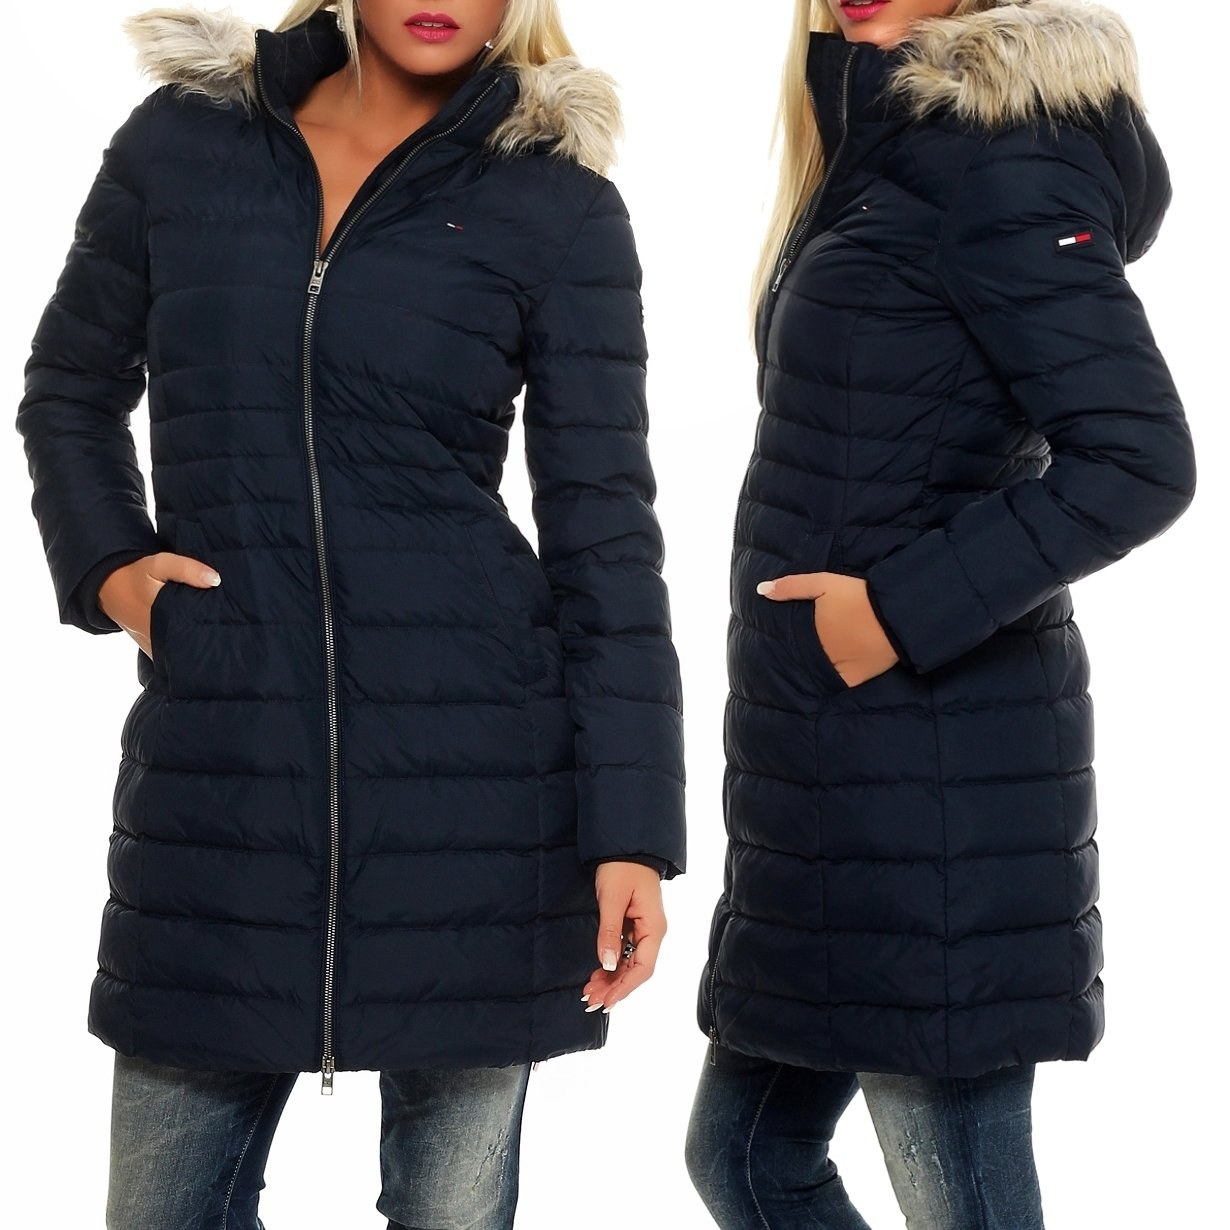 tommy hilfiger winter coat tradingbasis. Black Bedroom Furniture Sets. Home Design Ideas